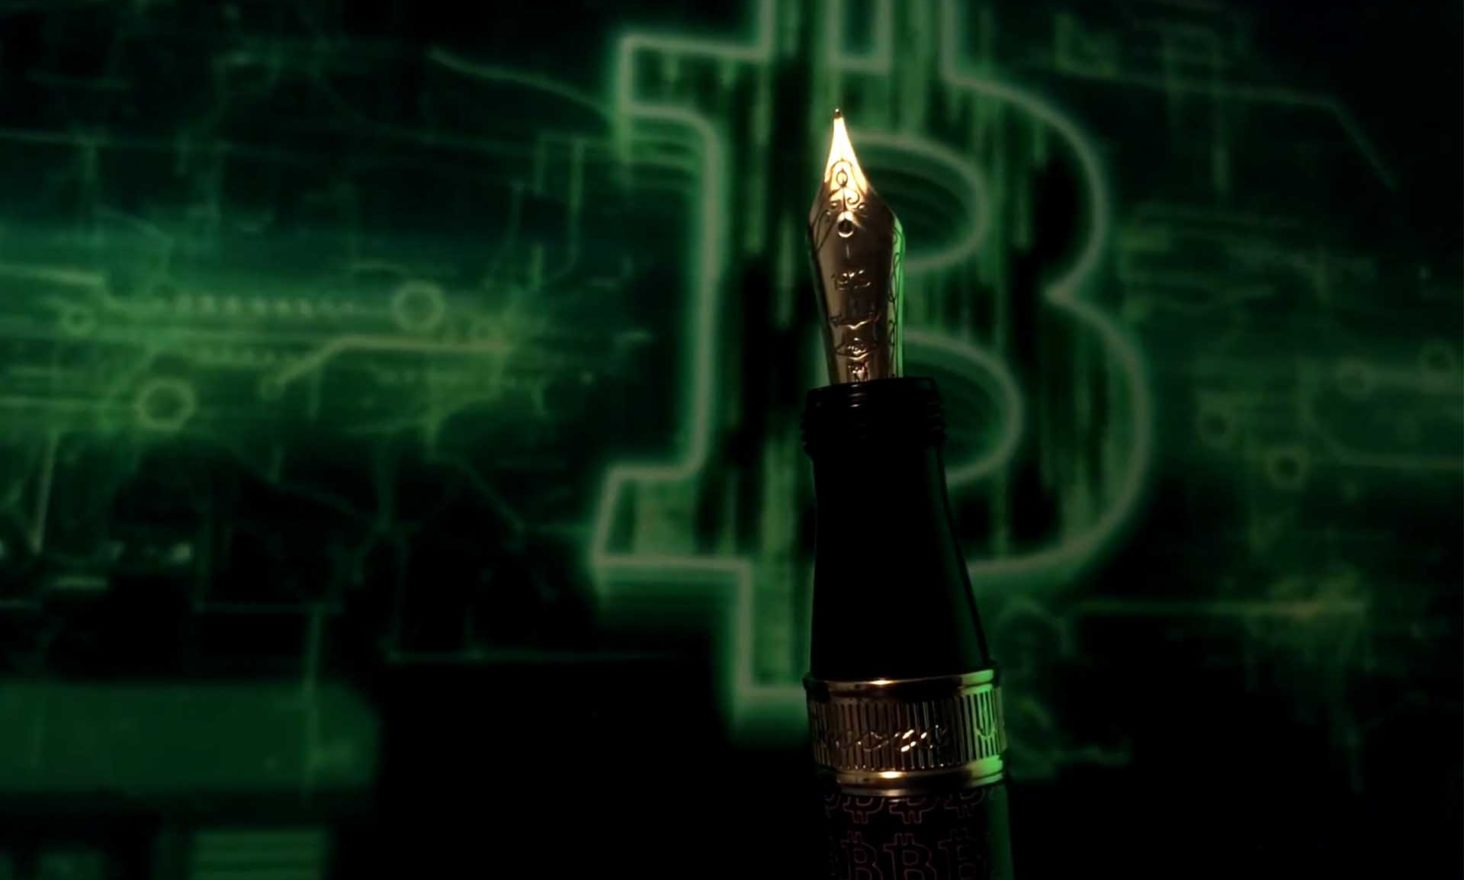 Limited Edition Bitcoin Pens: A New Type of IPO (Initial Pen Offering)